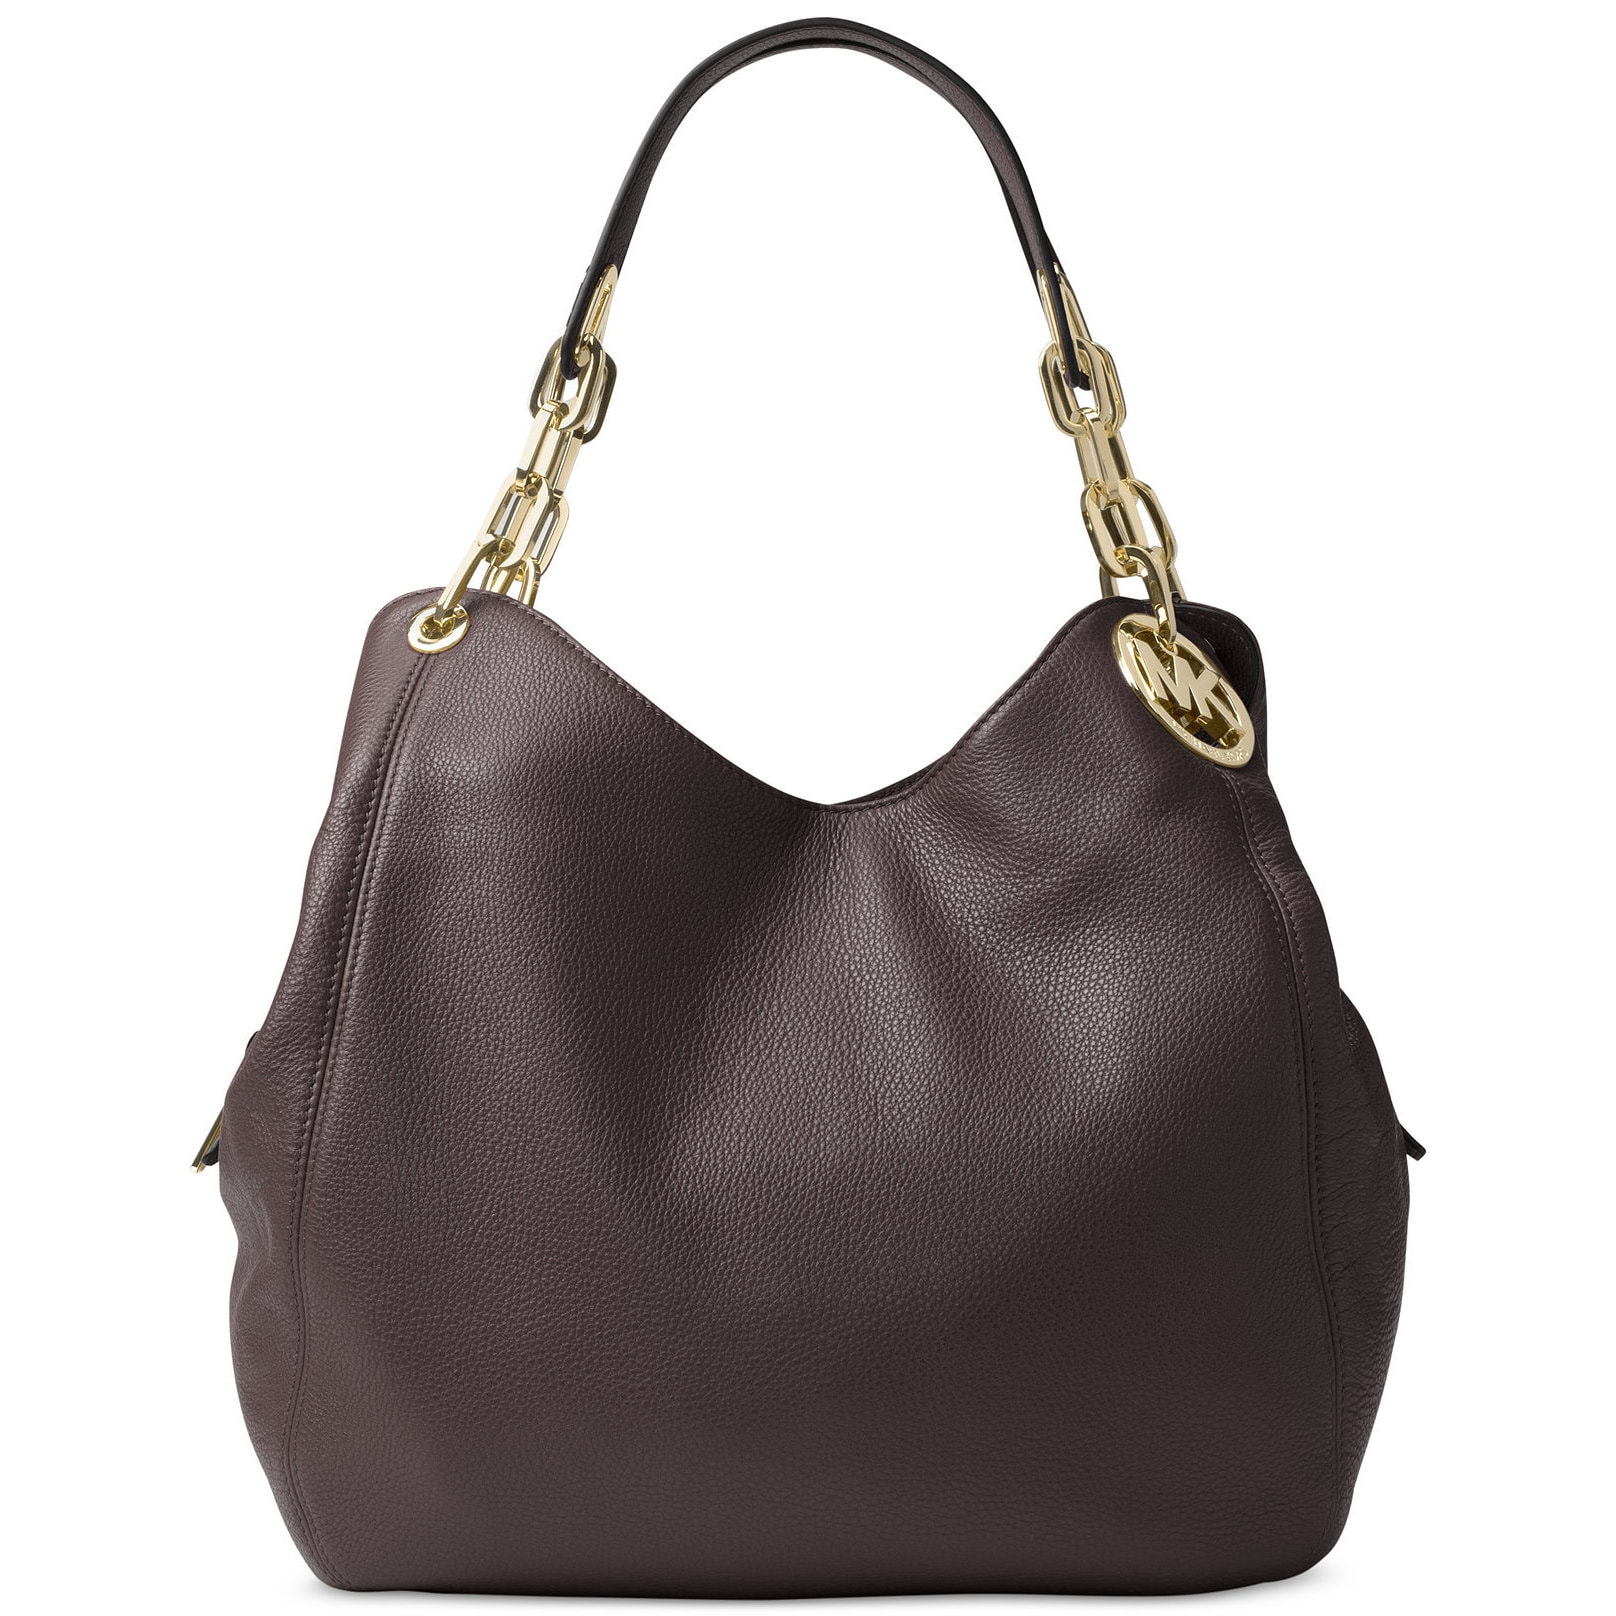 2c2e5b0db19f Shop Michael Kors Fulton Coffee Leather Large Shoulder Tote Bag - Free  Shipping Today - Overstock - 13330504